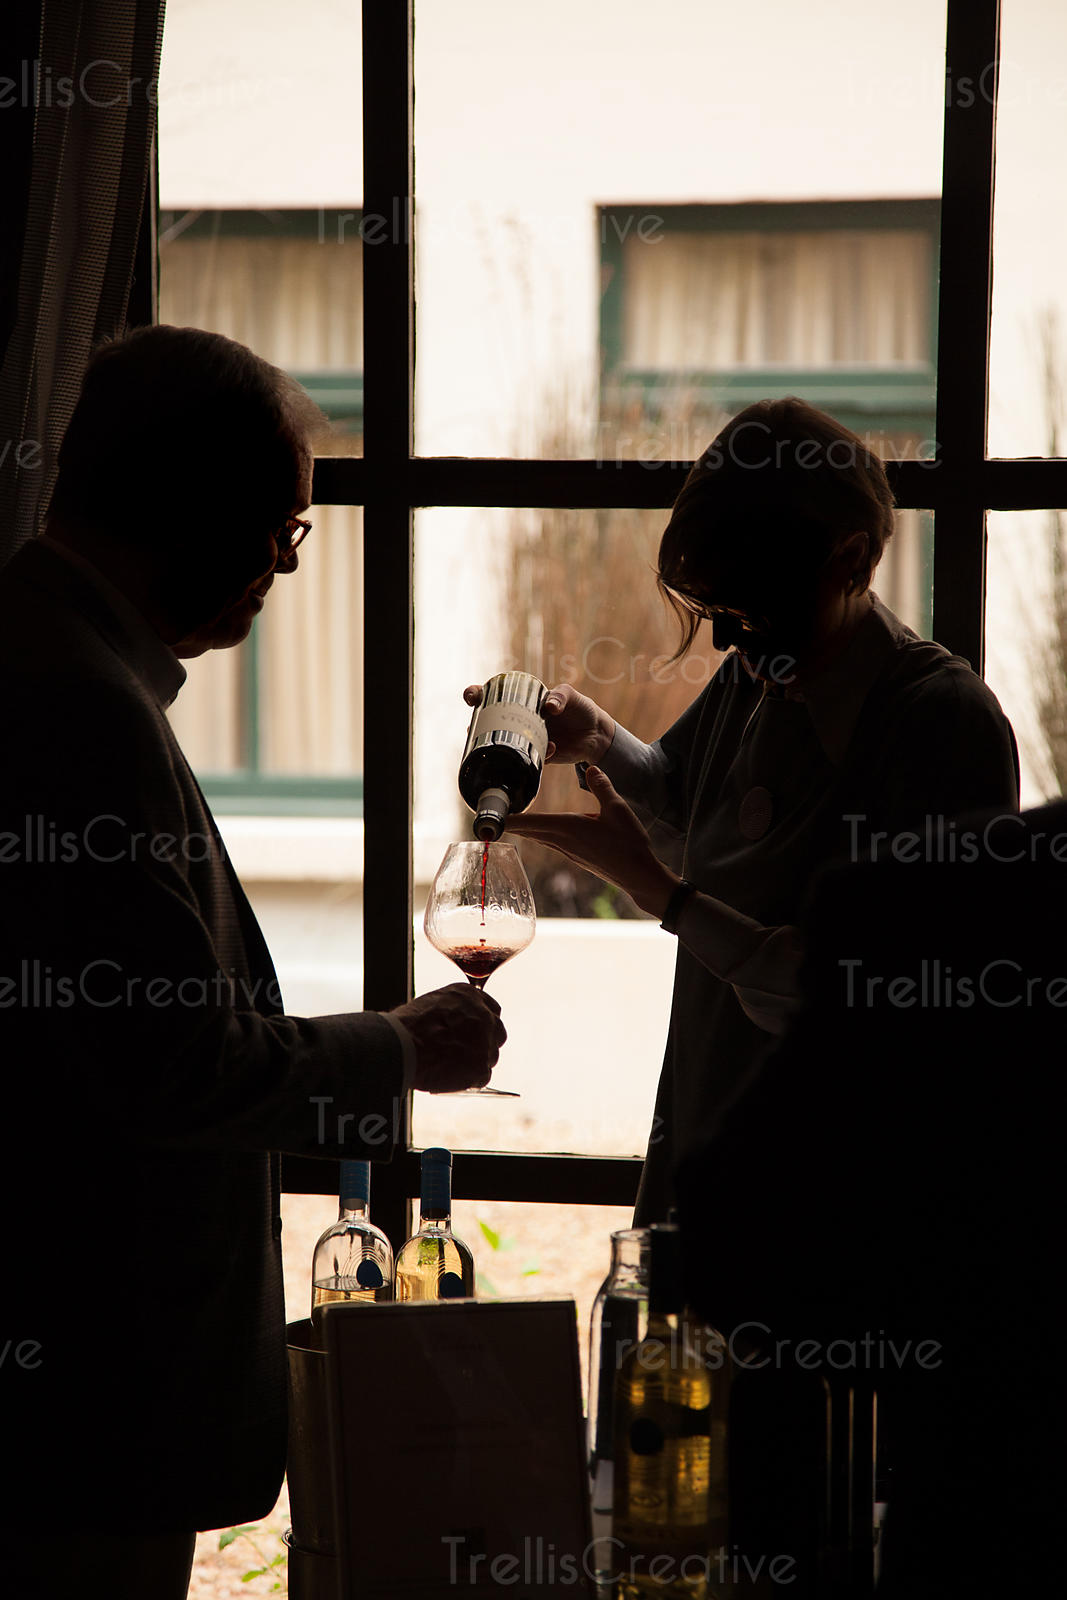 Silhouette of a woman pouring a glass of wine for a man